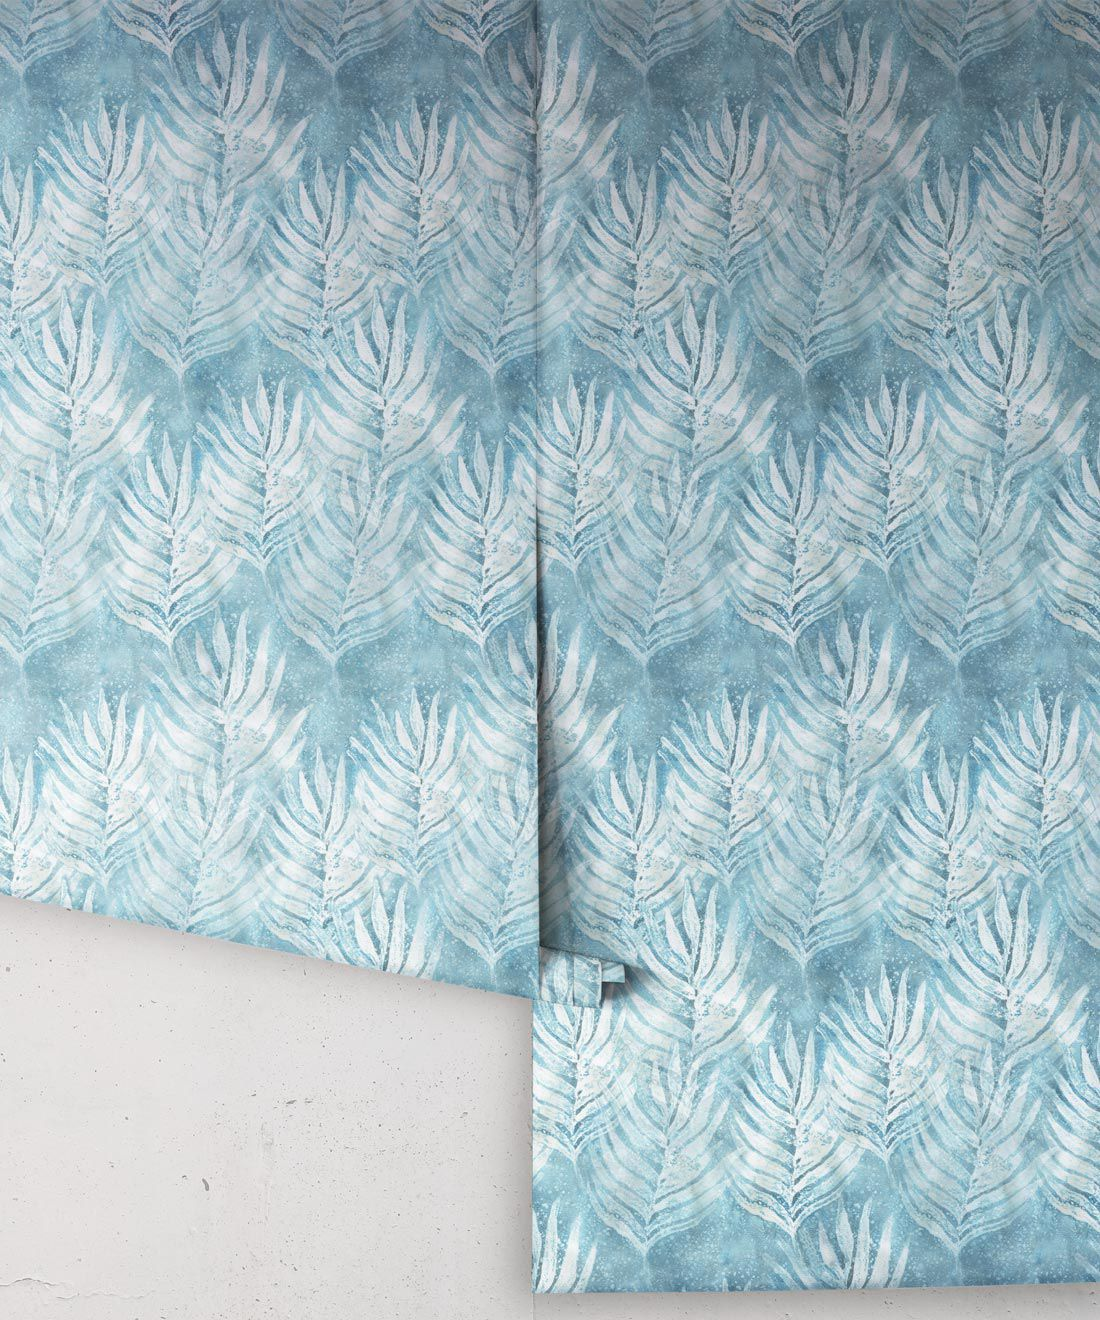 Aqua Shibori Leaf Wallpaper